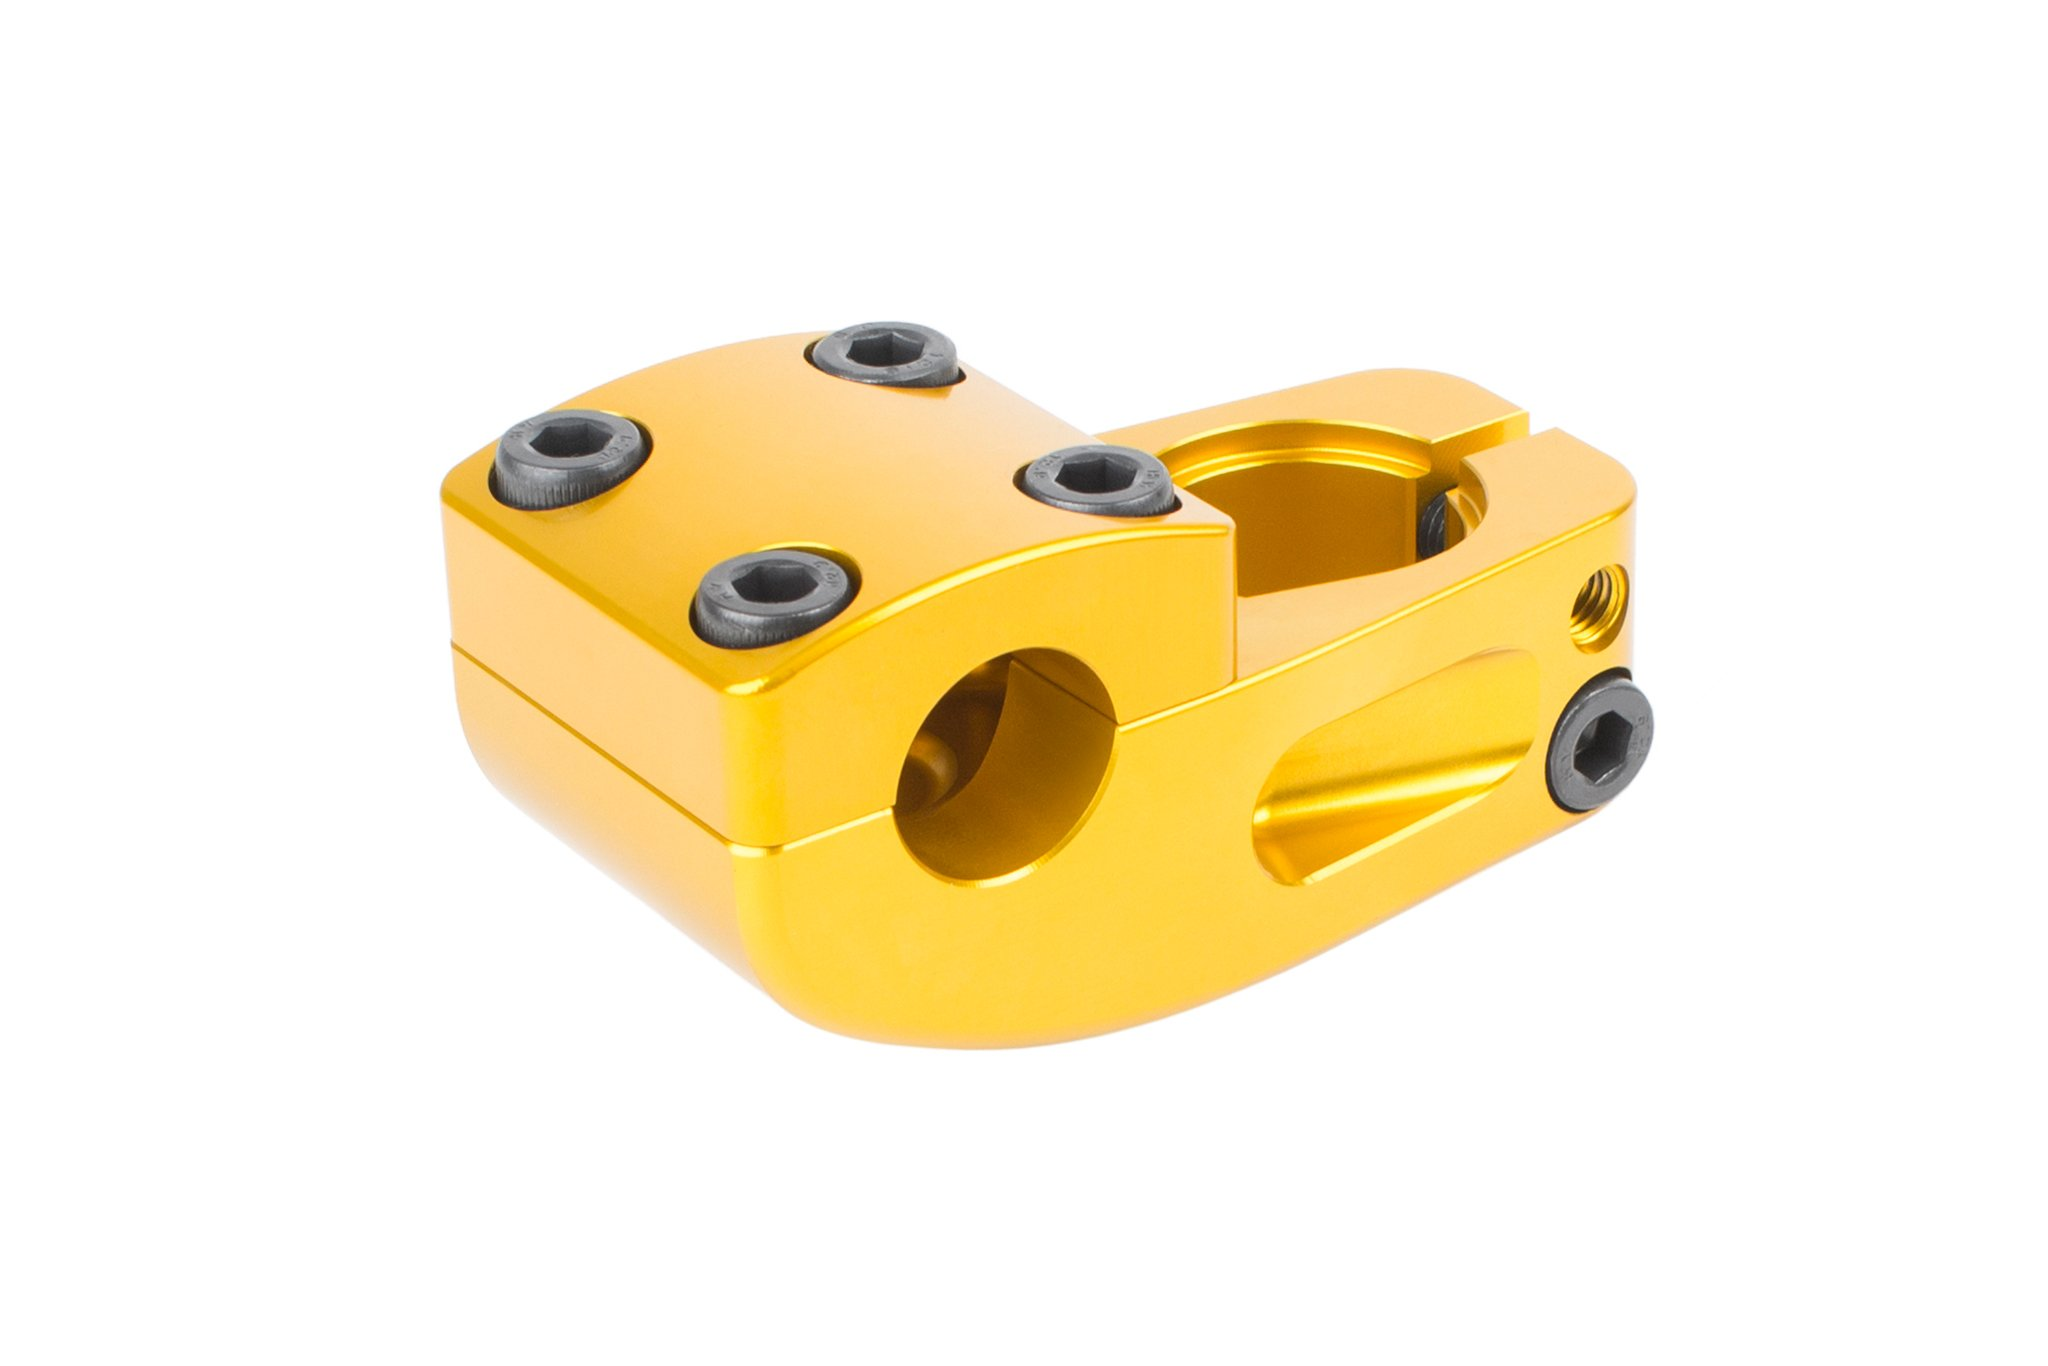 Odyssey BMX Broc V2 Topload Stem in Anodized Gold (Broc Raiford Signature)